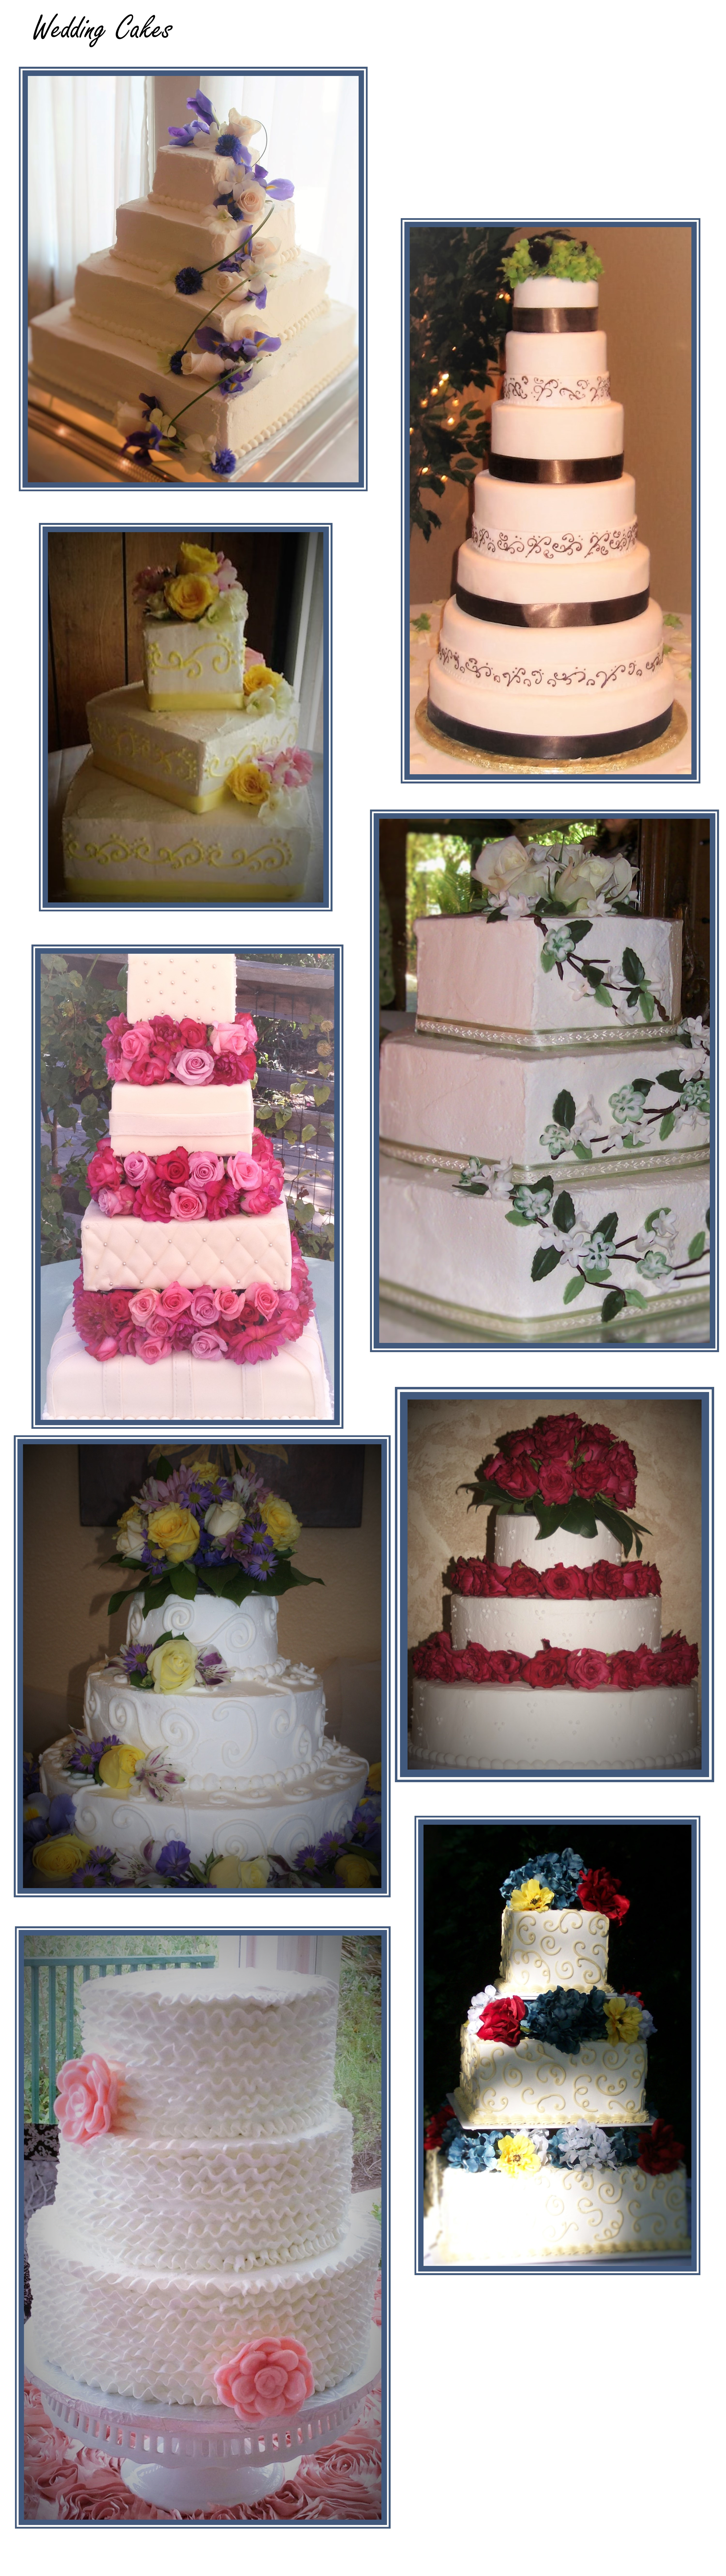 wedding cakes PAGE